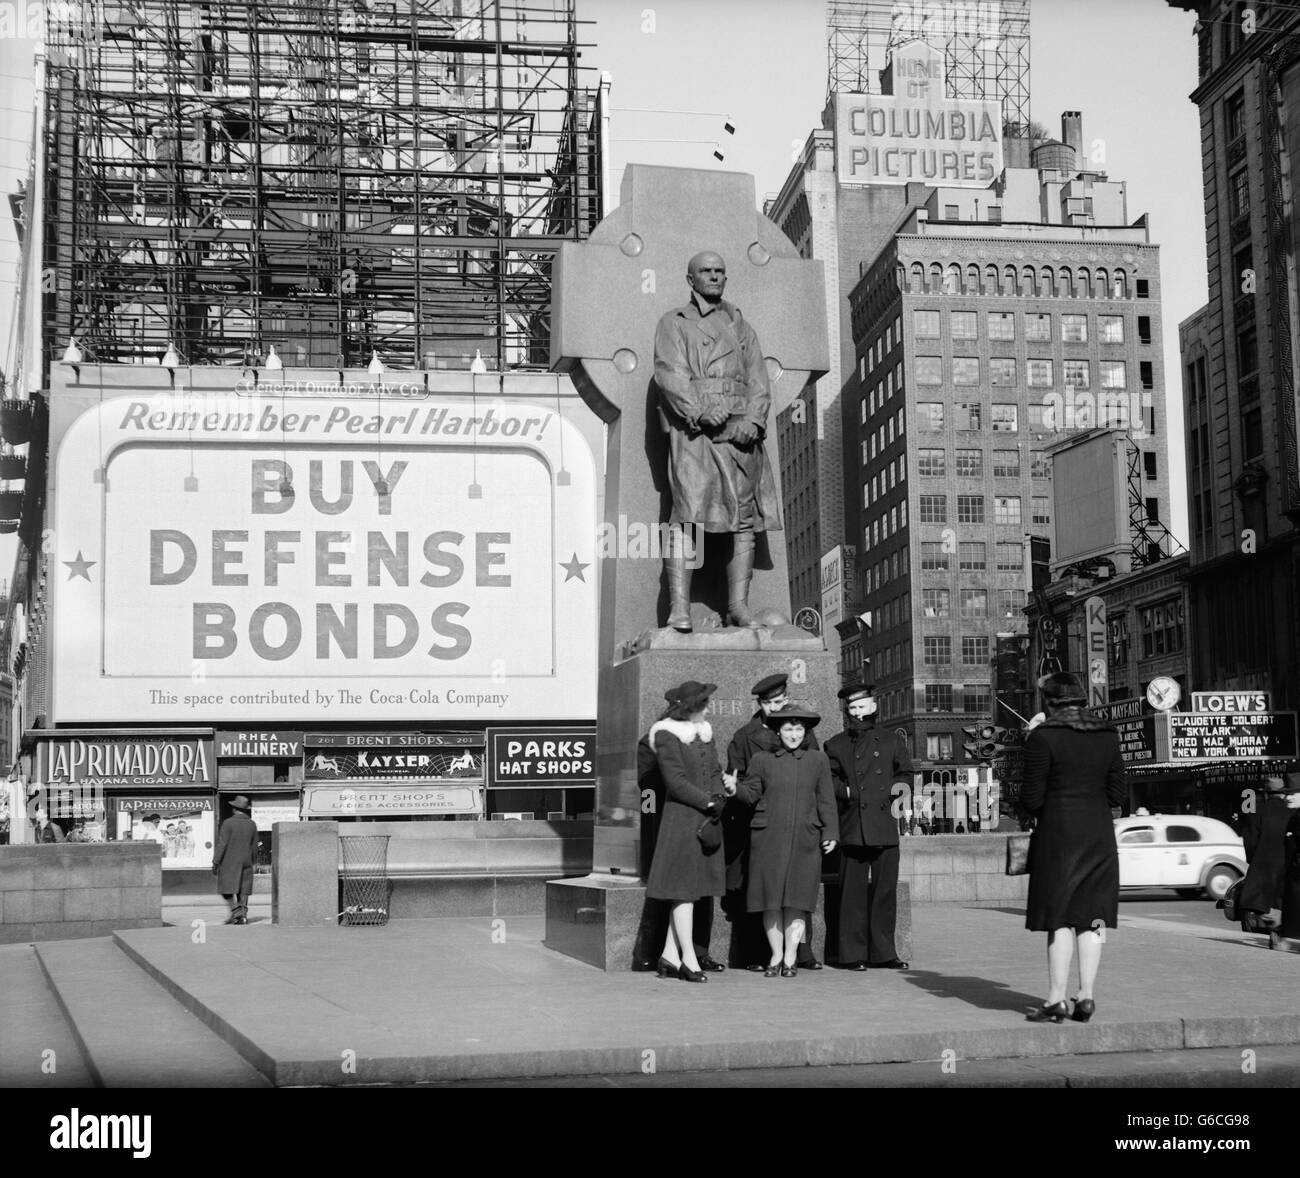 1940s SAILORS & WOMEN POSE AT FATHER DUFFY STATUE BUY DEFENSE BONDS BILLBOARD WARTIME WW2 1942 TIMES SQUARE - Stock Image